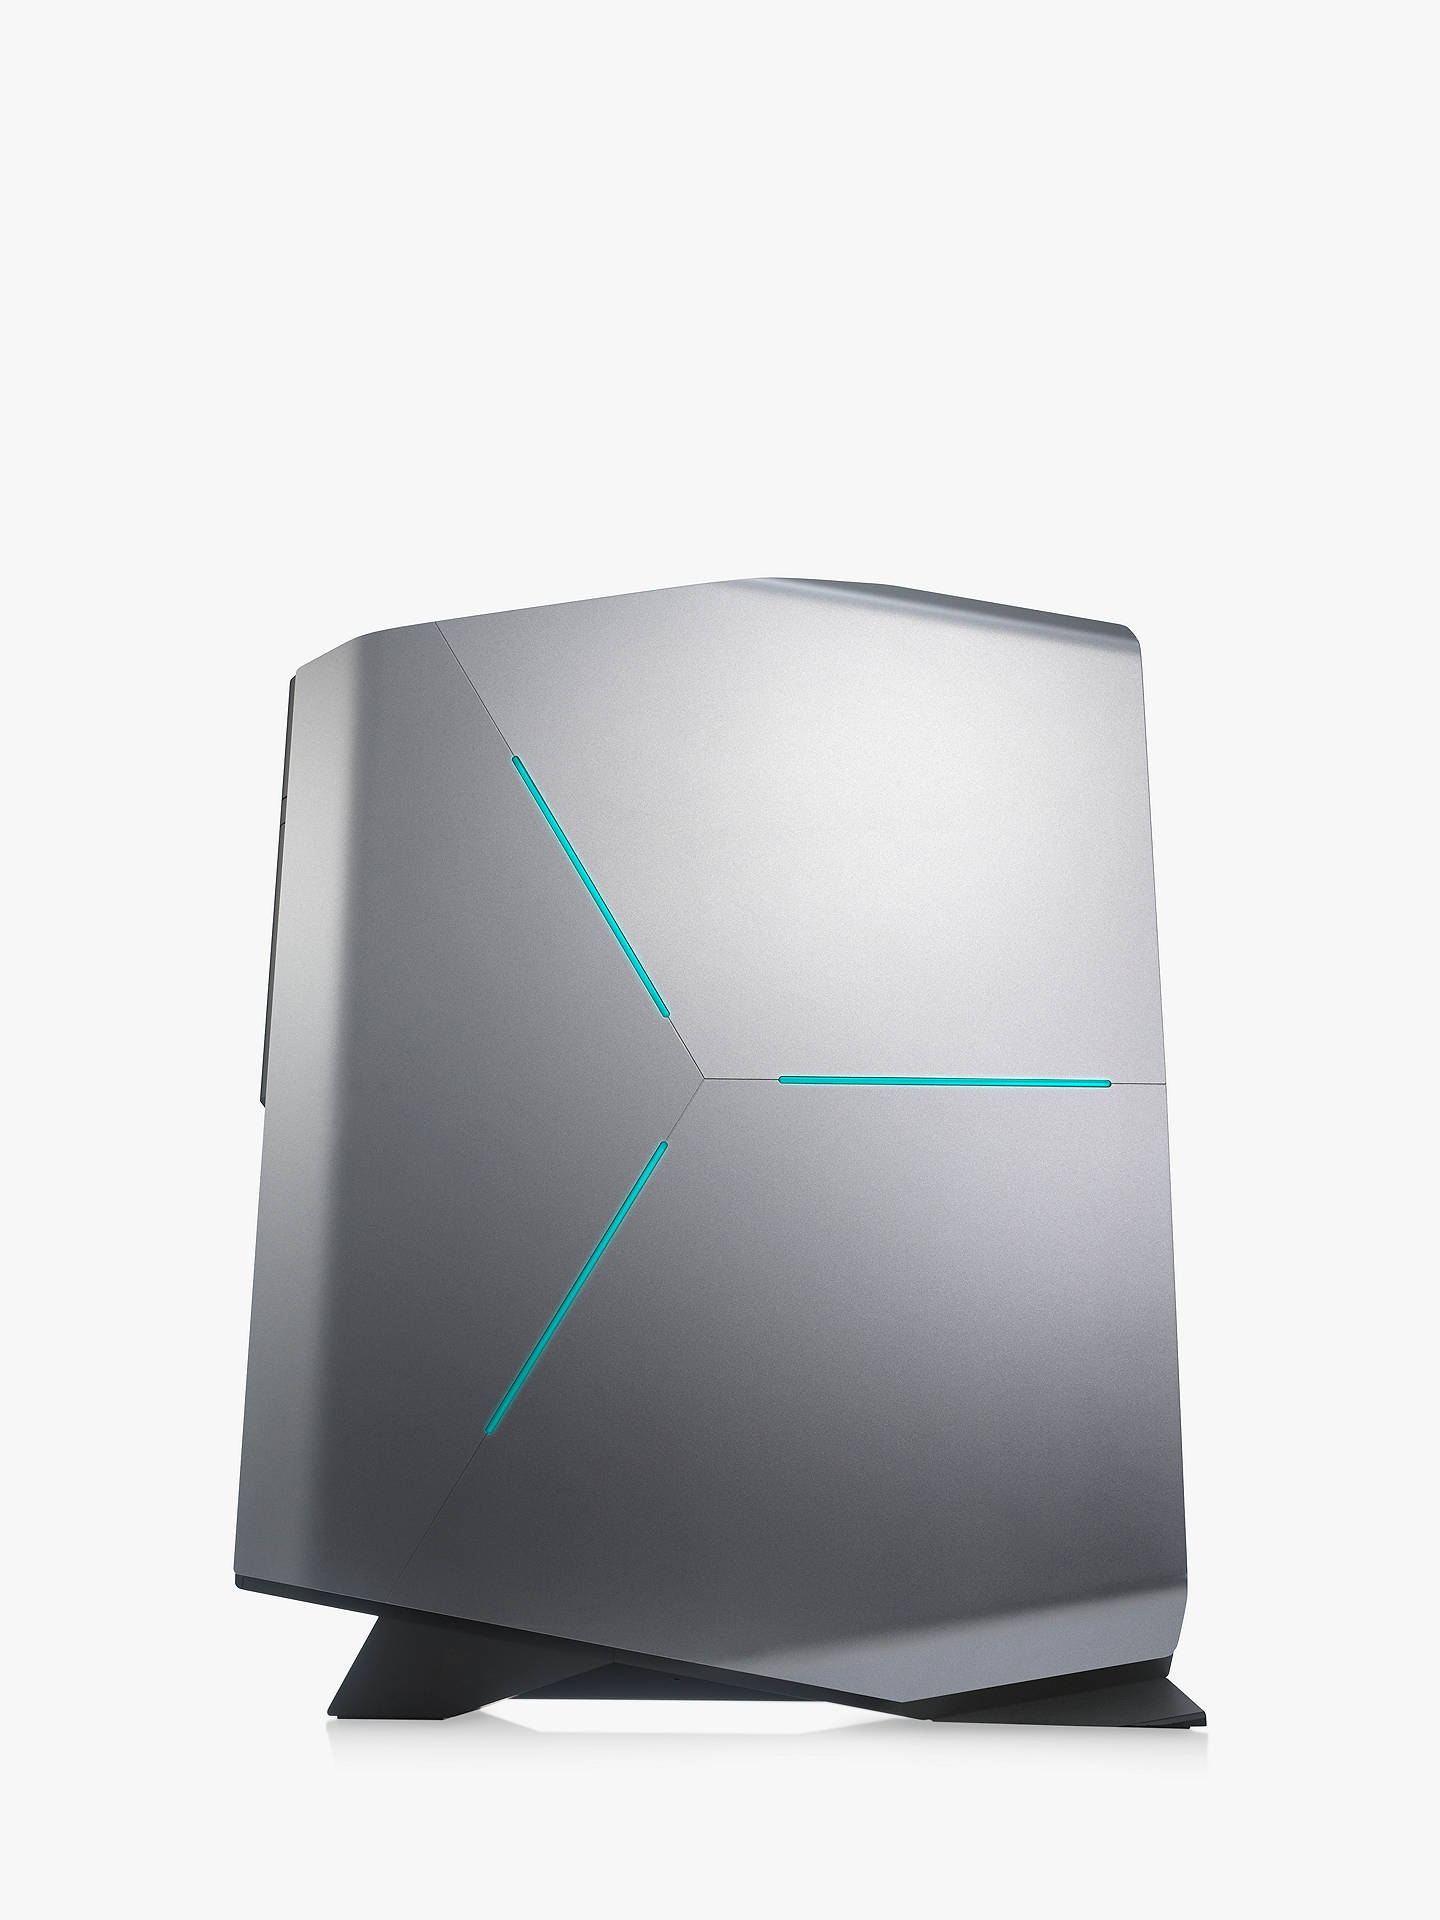 BuyAlienware 3RJD0 Gaming PC, Intel Core i7, 16GB RAM, 2TB HDD + 32GB Intel Optane Memory, GeForce GTX 1080, Epic Silver Online at johnlewis.com